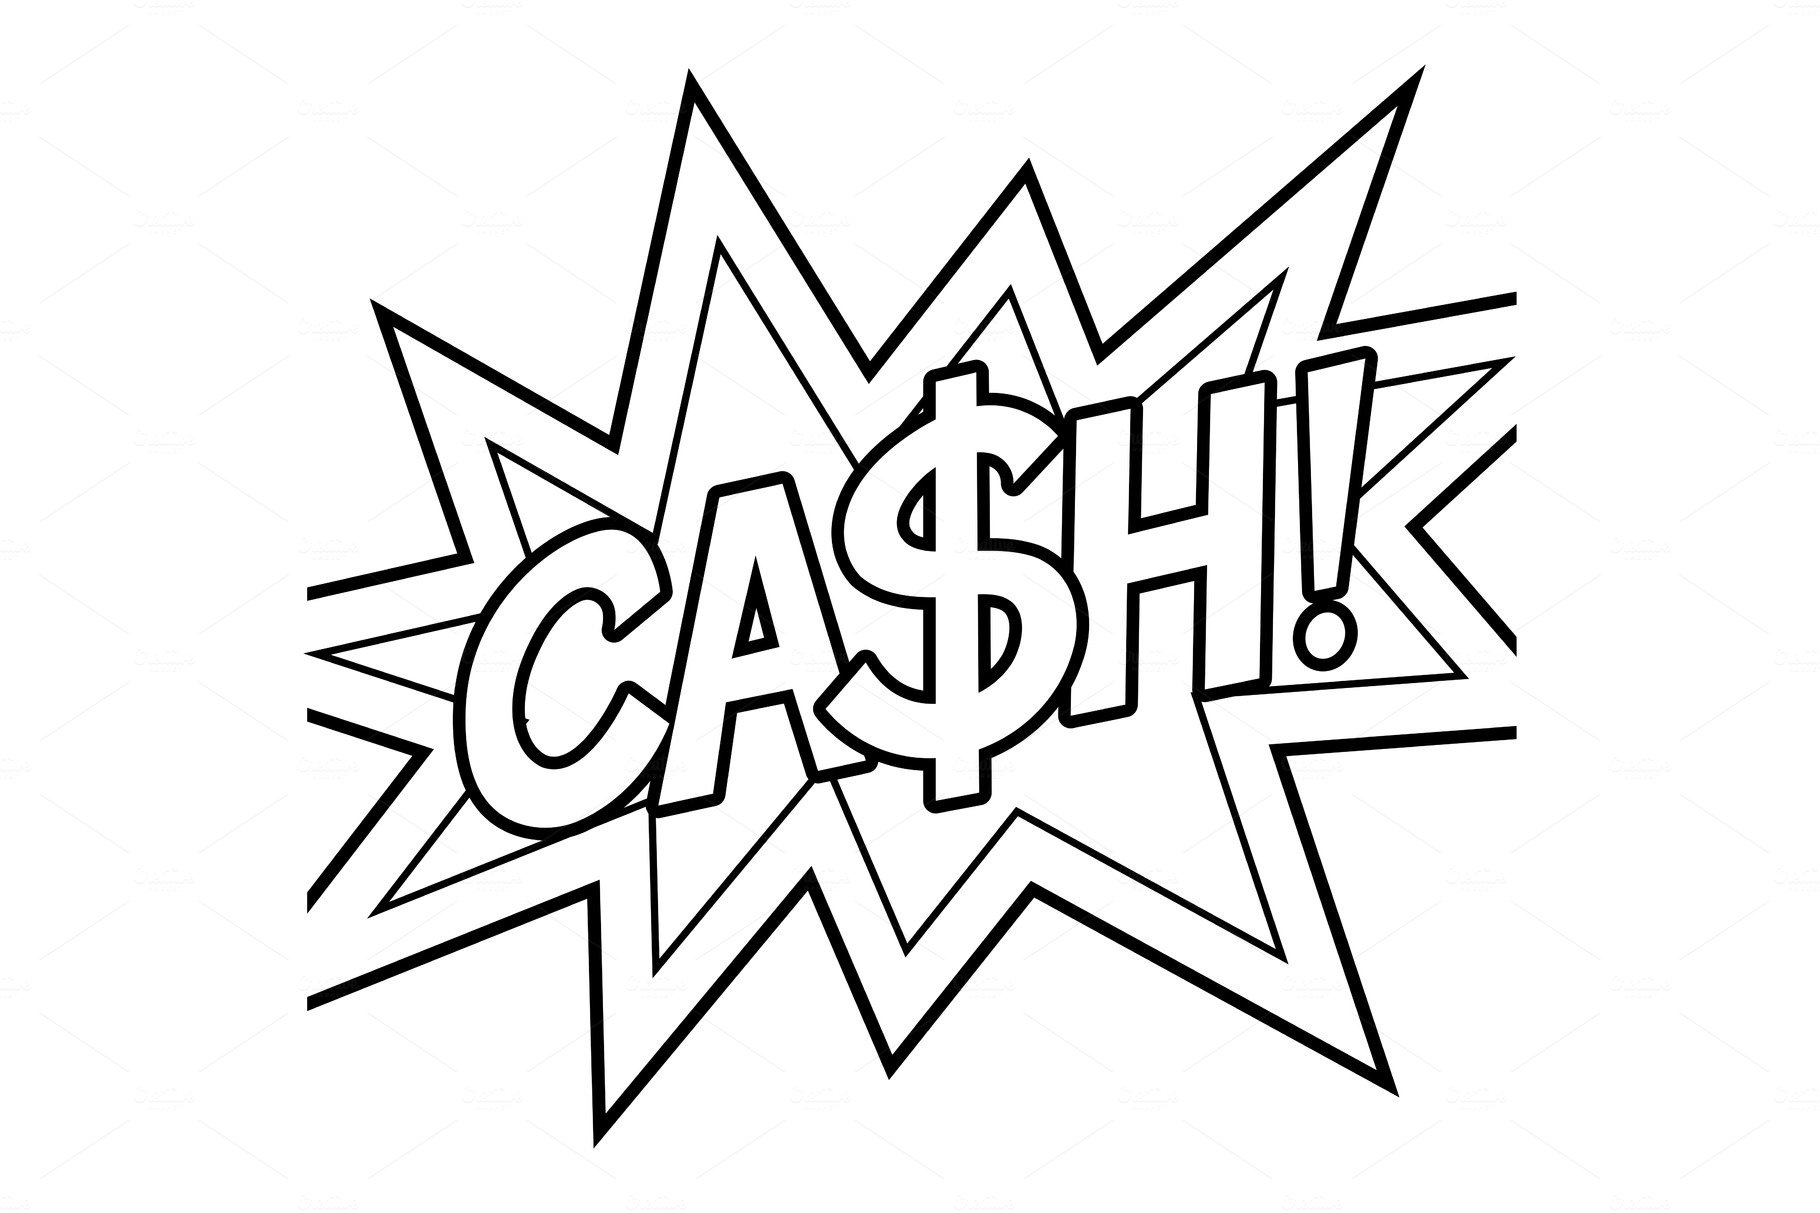 Cash word comic book coloring vector illustration